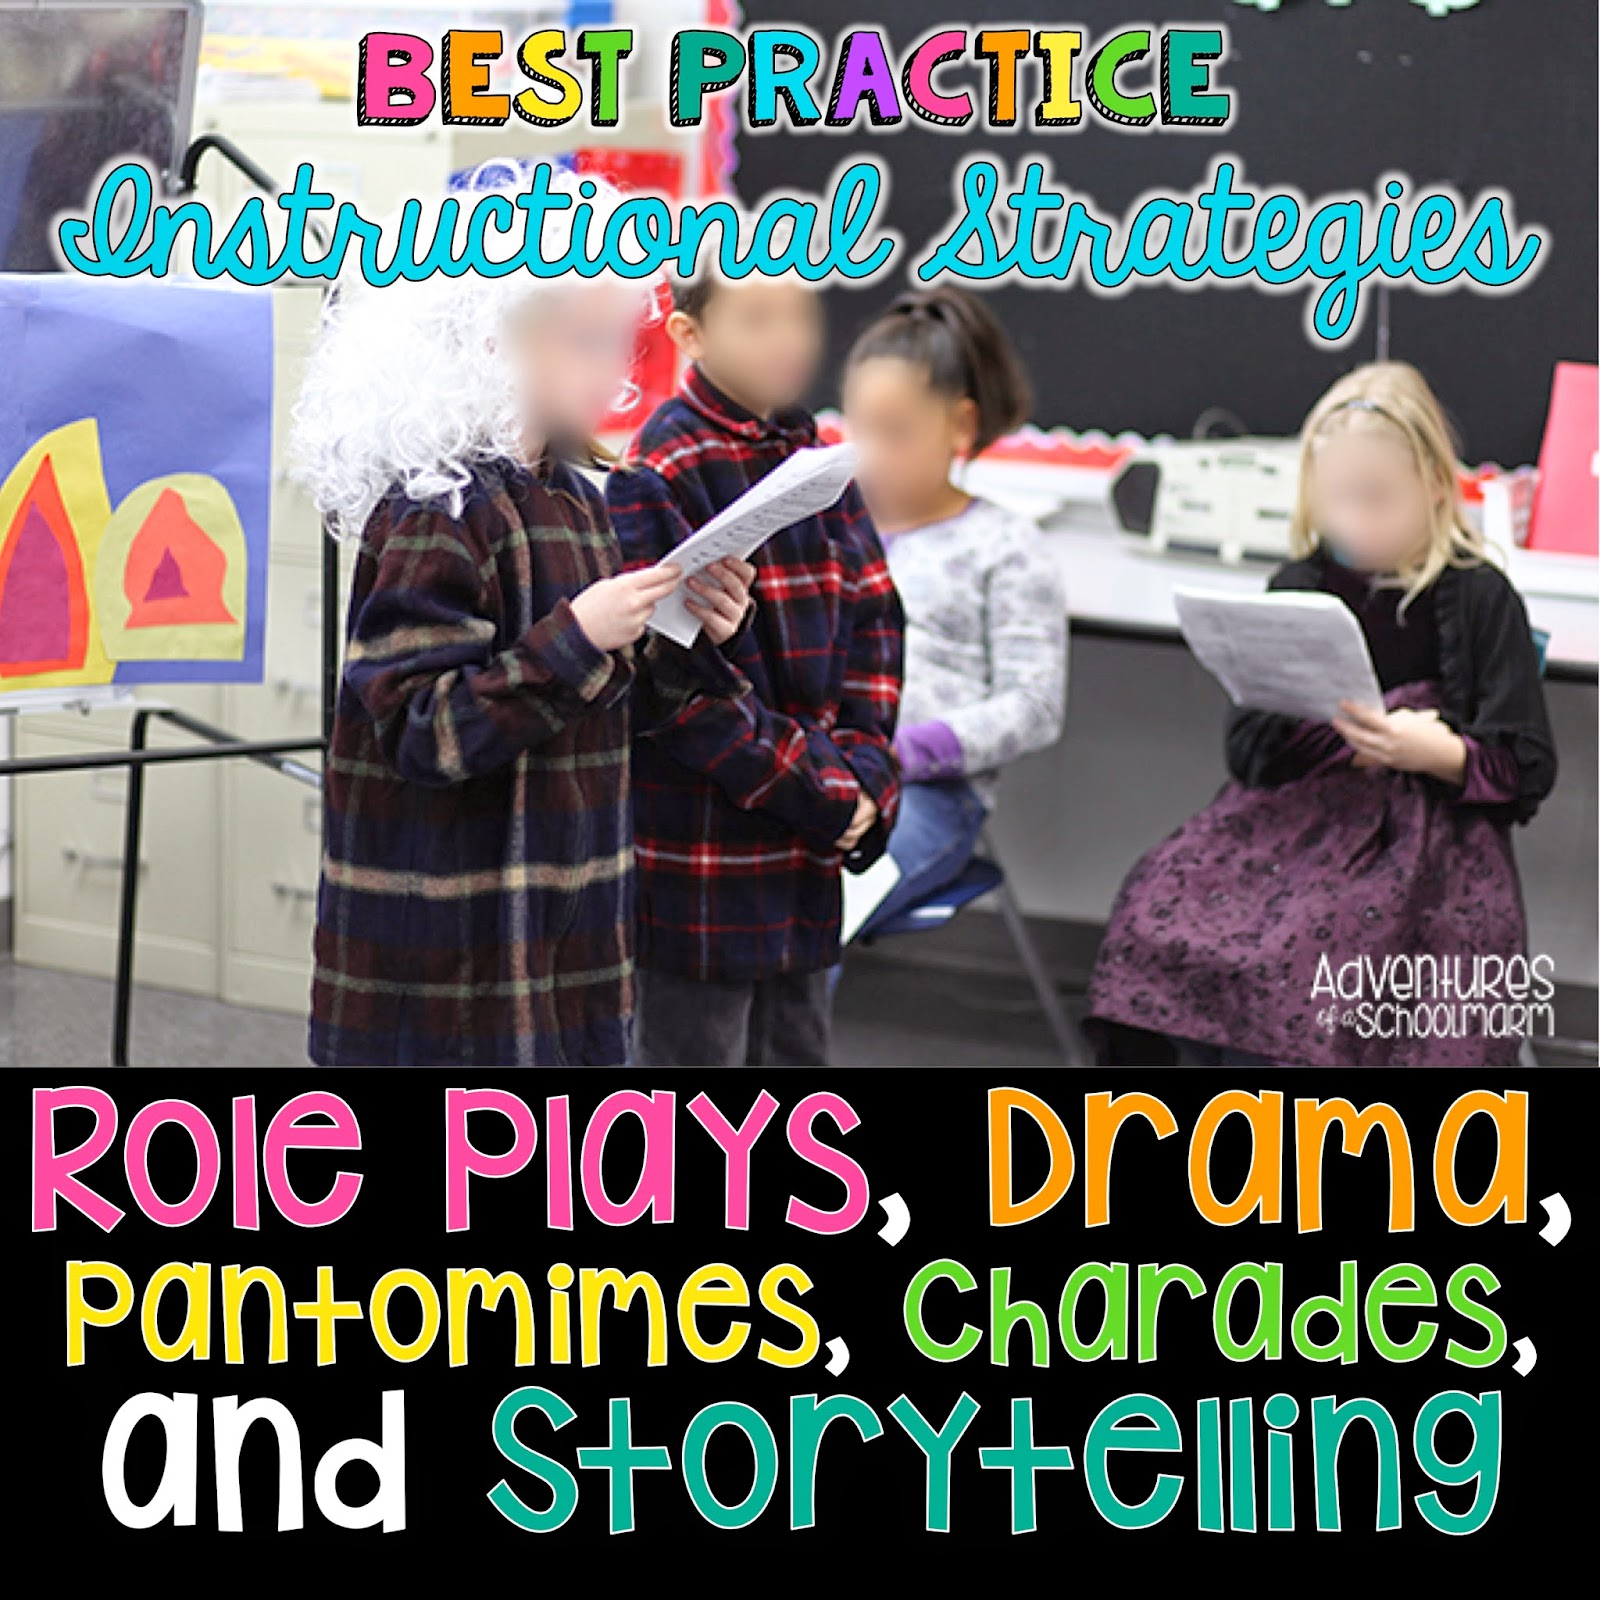 Worksheets Dont Grow Dendrites Role Plays Drama Pantomimes – Worksheets Don T Grow Dendrites